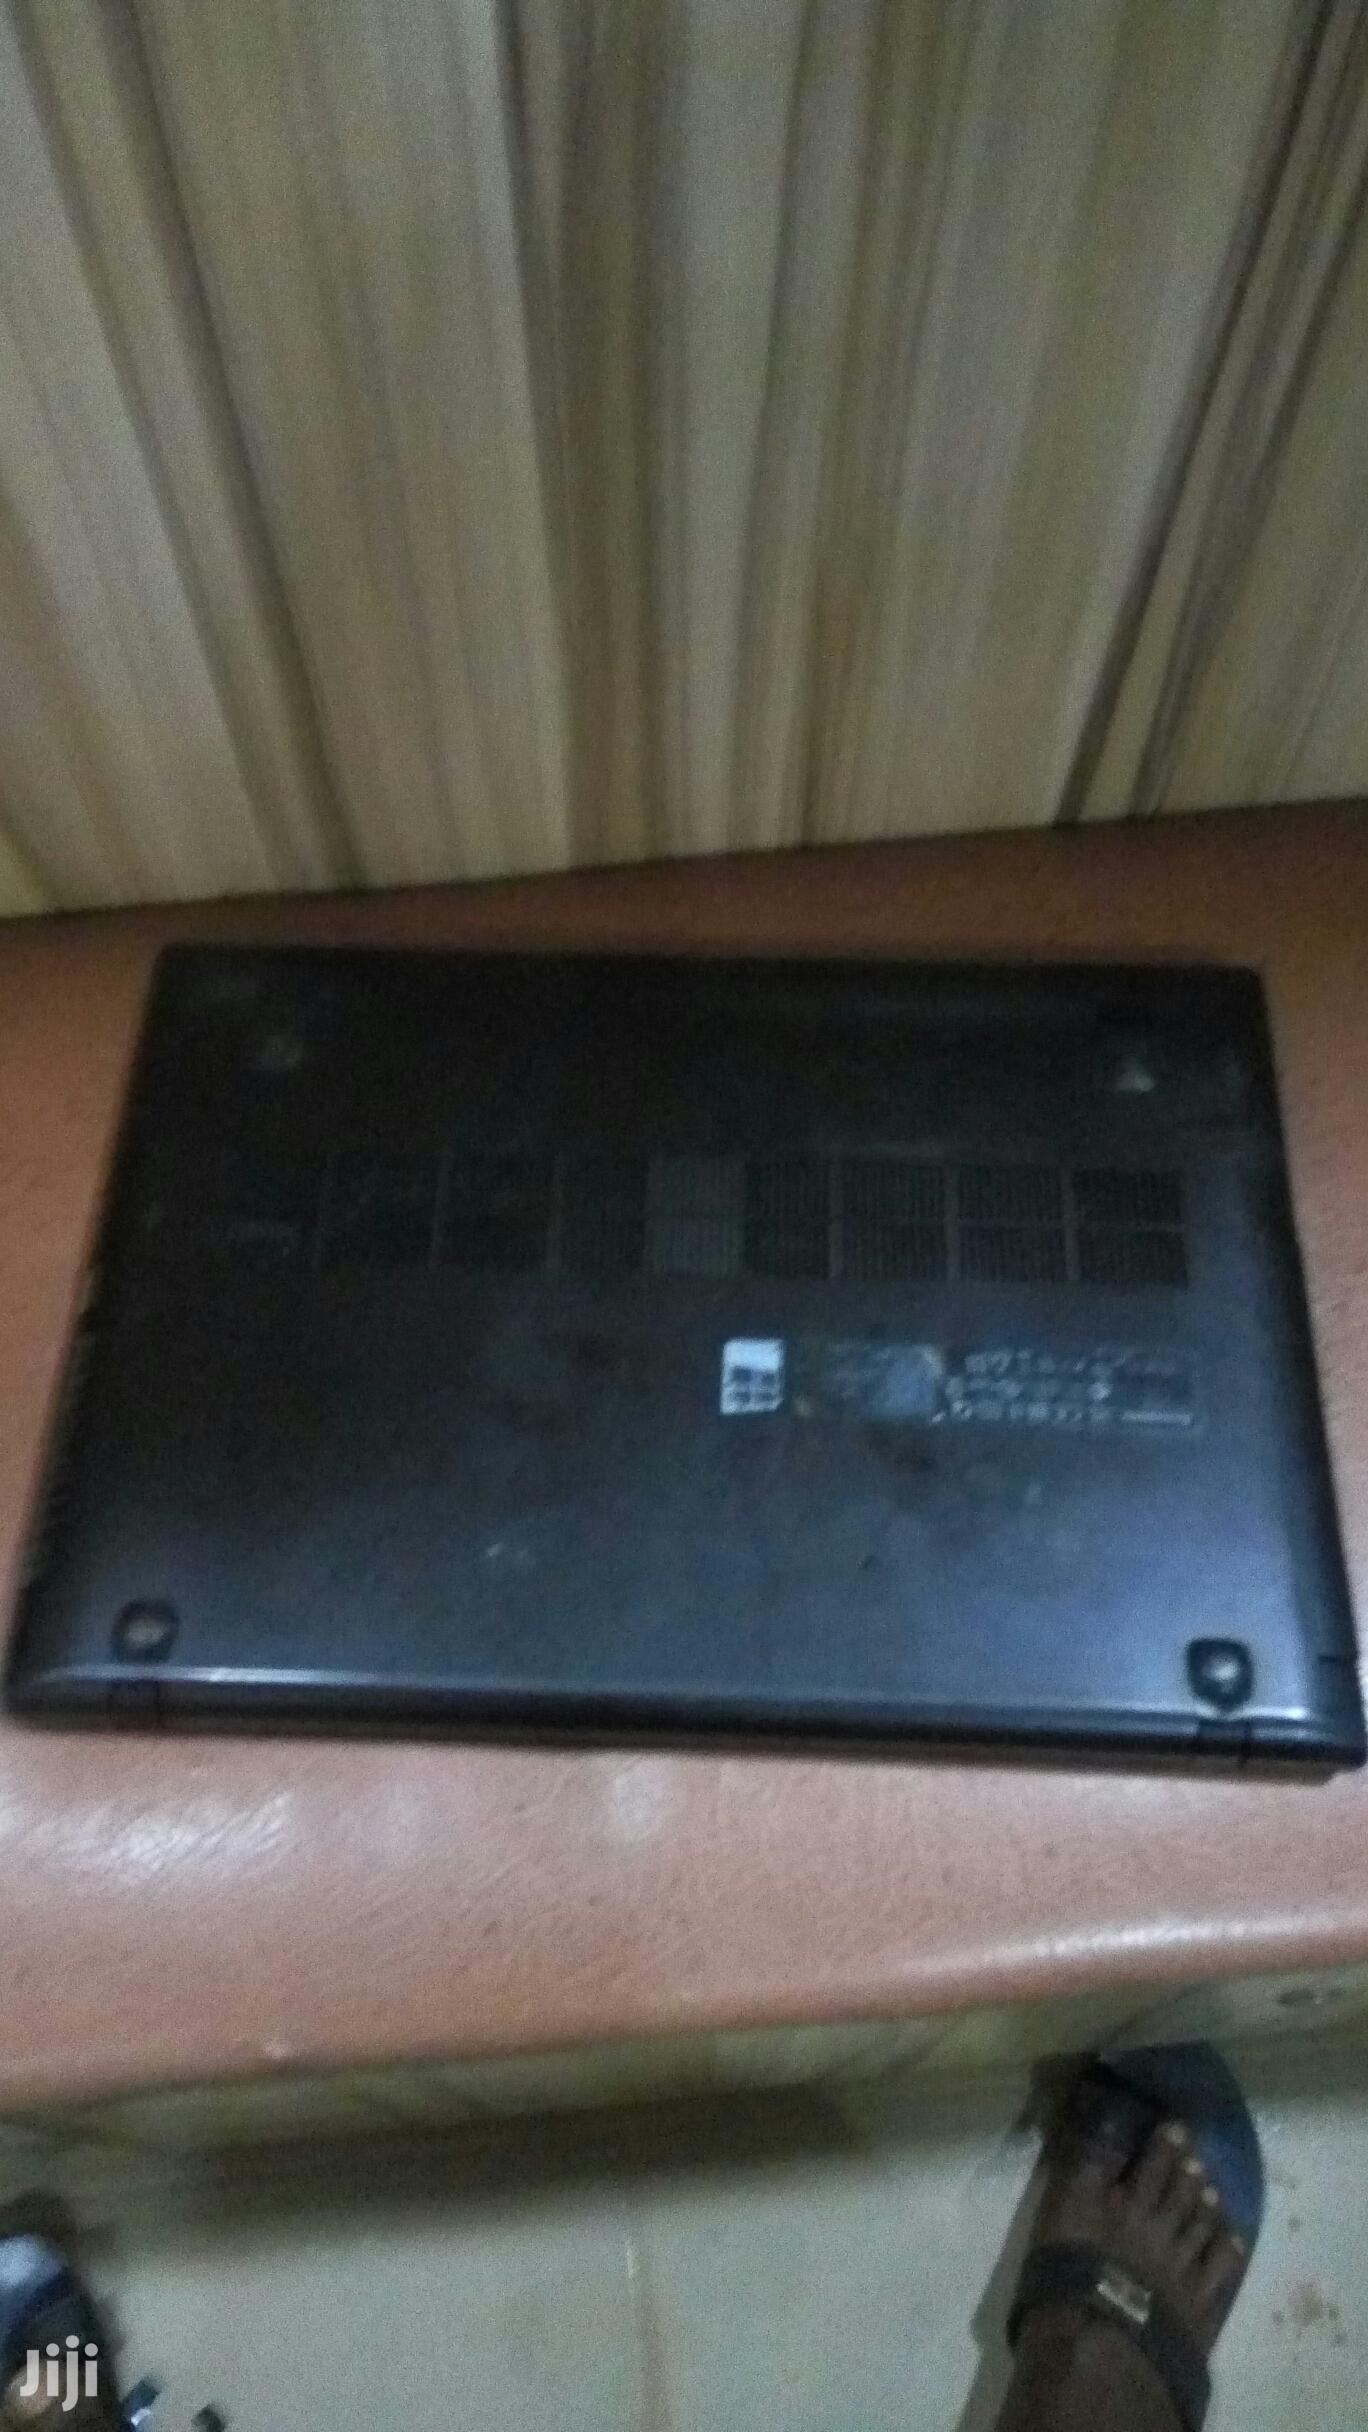 Laptop Lenovo IdeaPad Z510 8GB Intel Core I5 HDD 1T   Laptops & Computers for sale in Wuse, Abuja (FCT) State, Nigeria